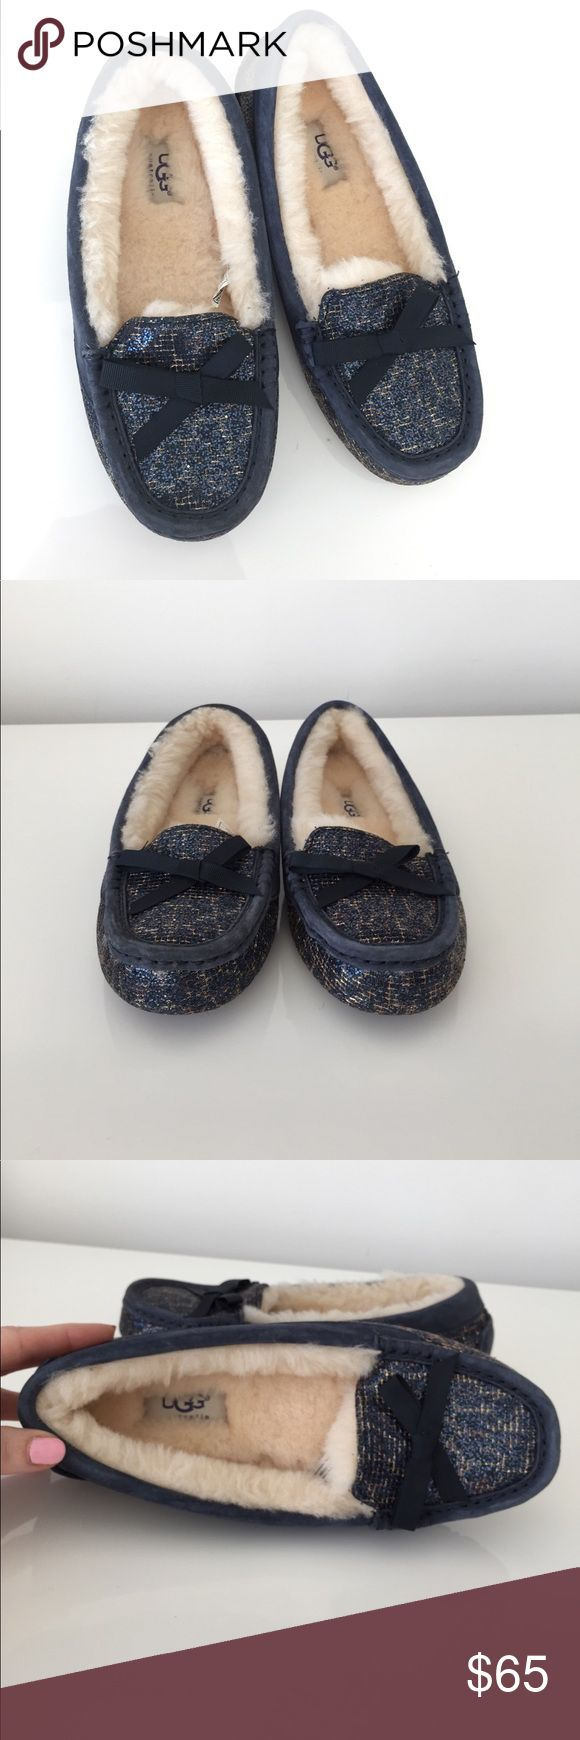 UGG SPARKLE SLIPPER NWT SIZE 6 Brand new UGG Australia Rylee slipper size 6.   Retail is $120 UGG Shoes Slippers